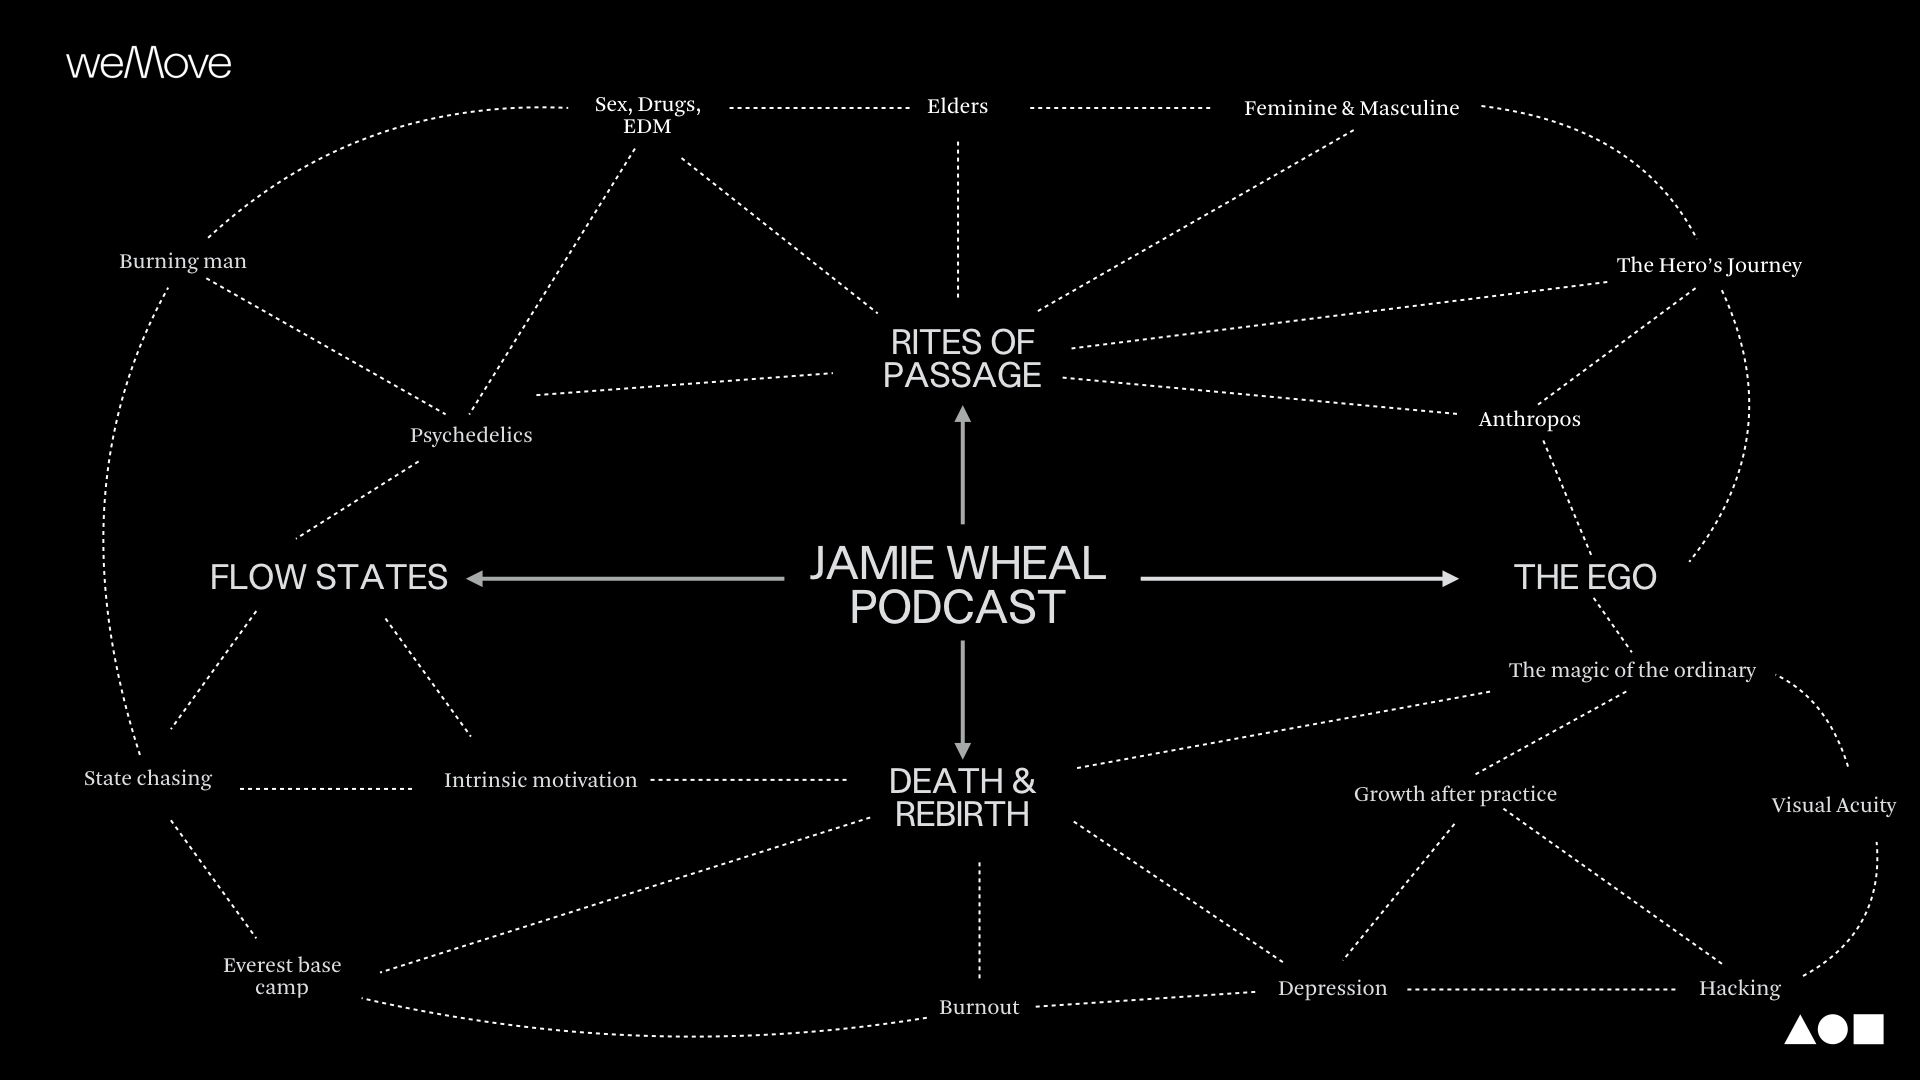 Jamie Wheal podcast mindmap: what we cover and how it connects.